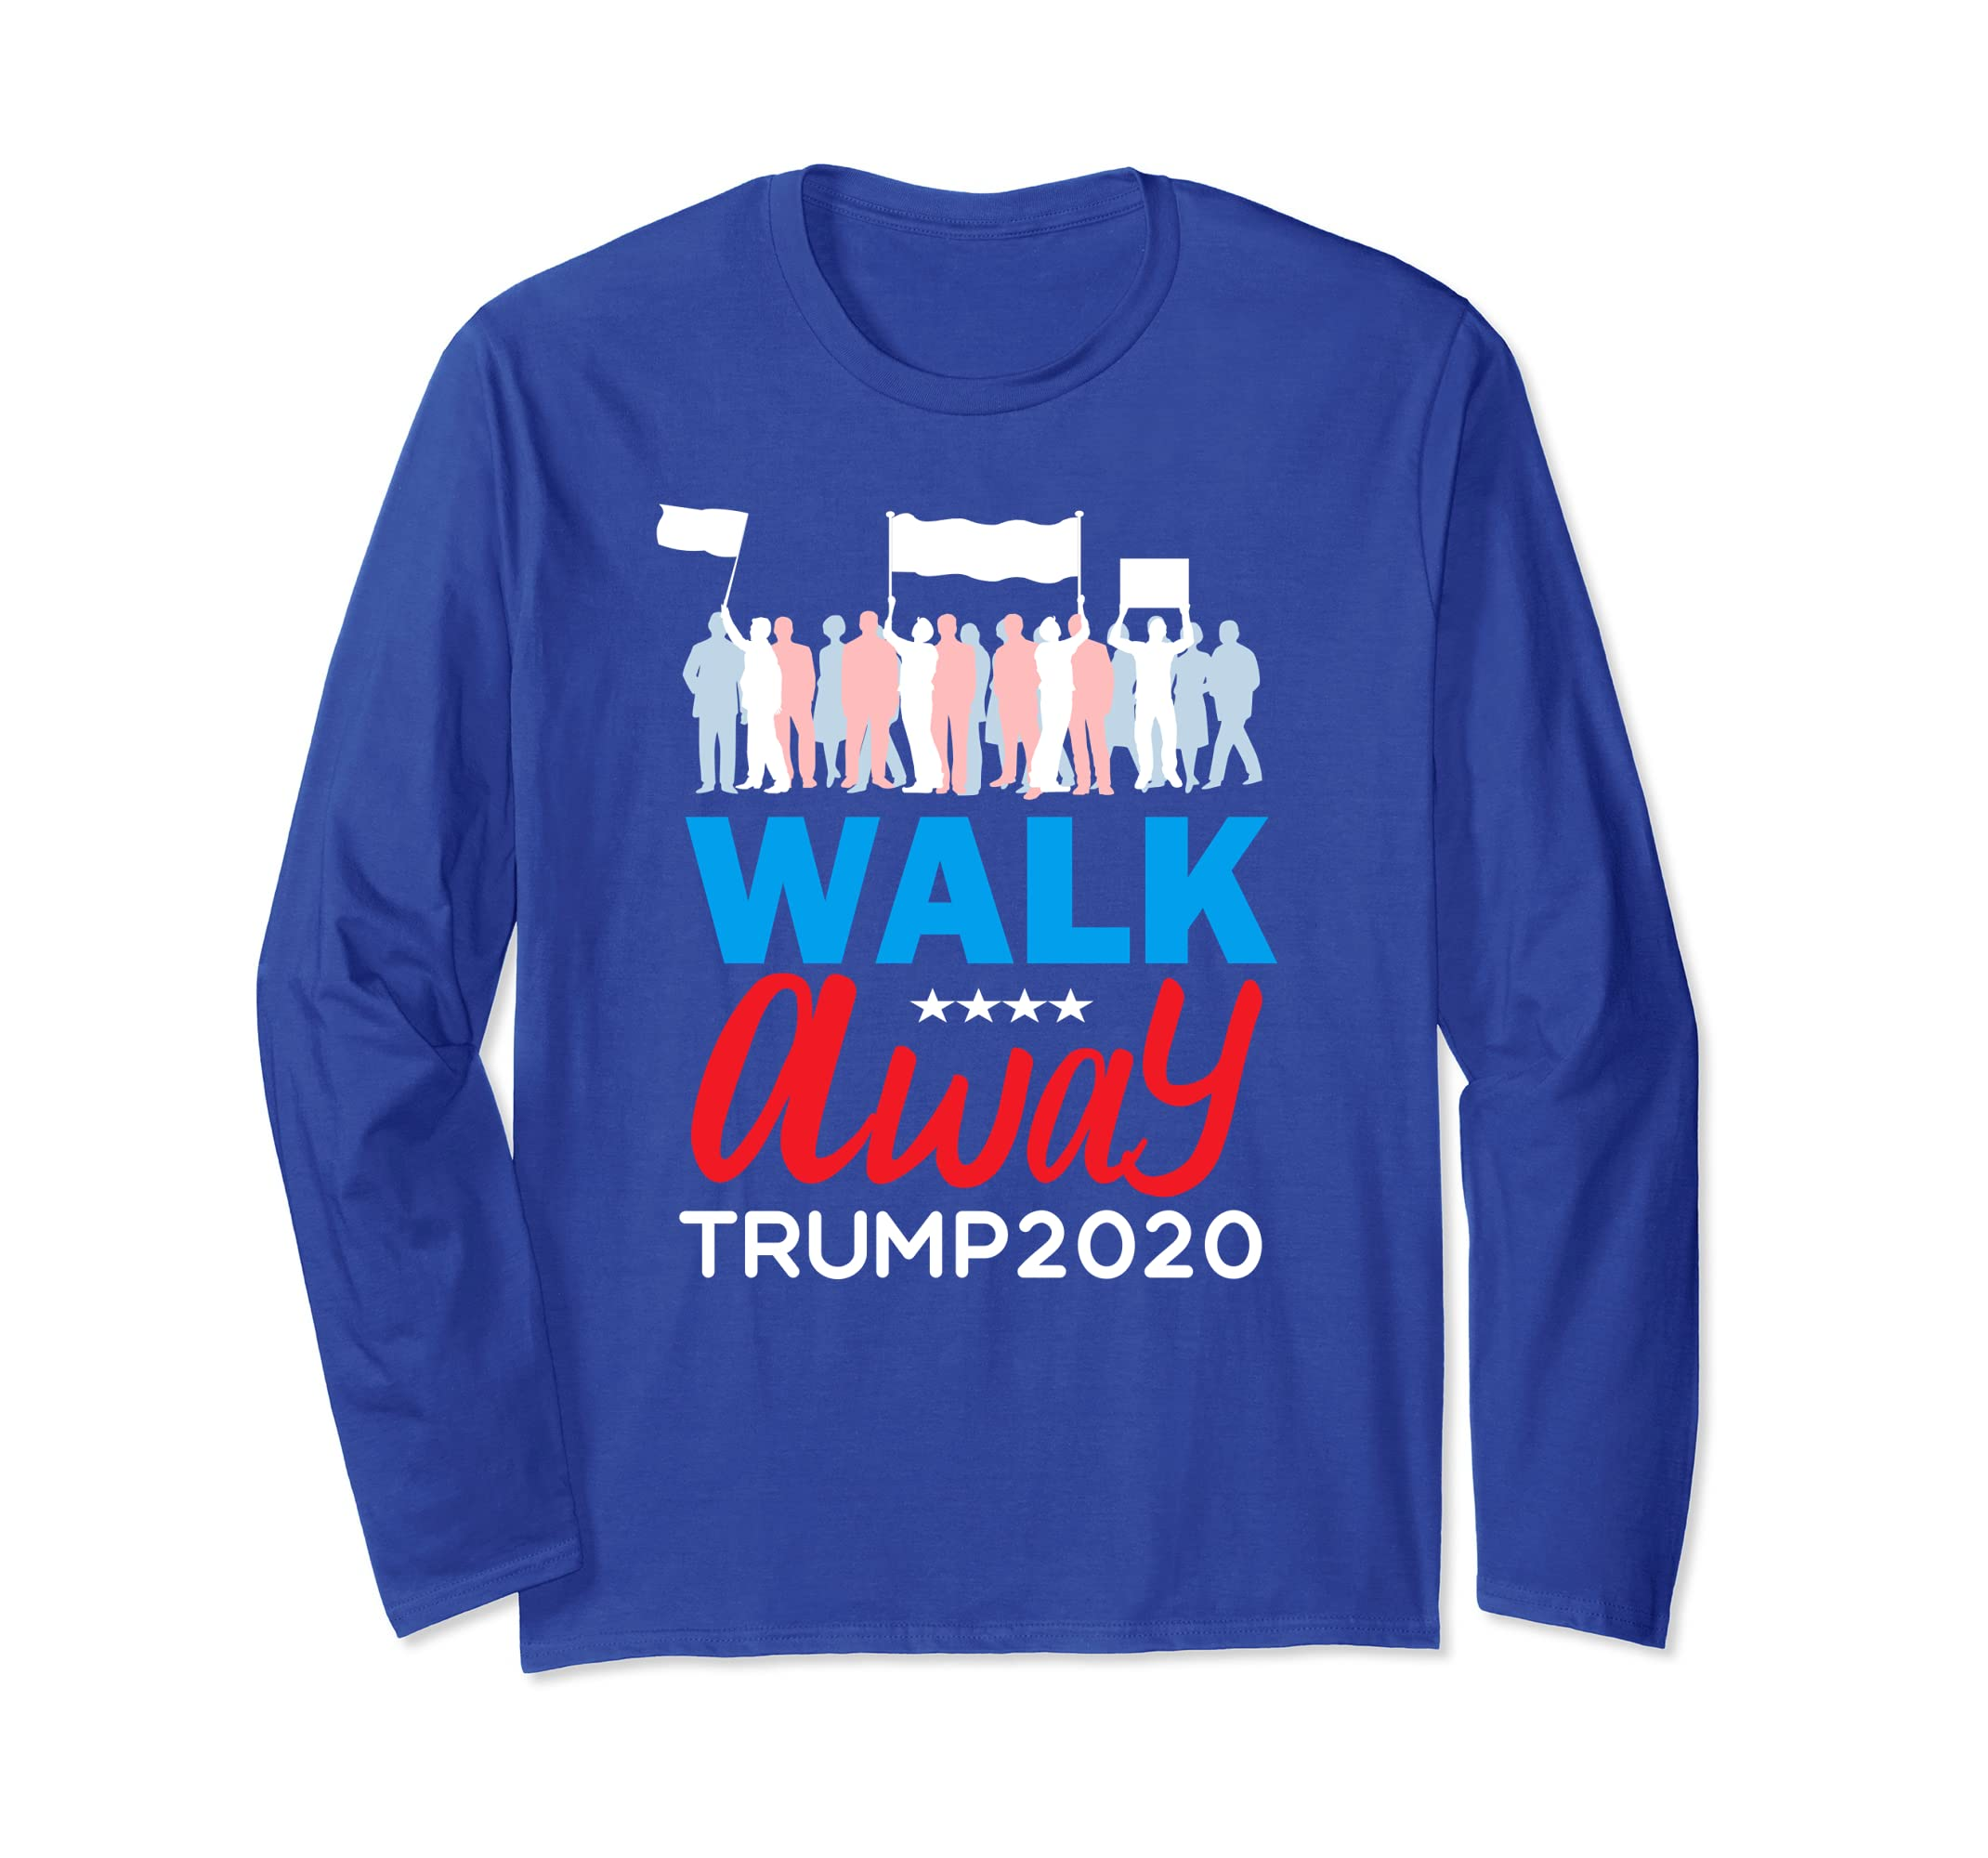 Walk Away from Hate No Hate Hashtag Rally Long Sleeve tShirt-azvn